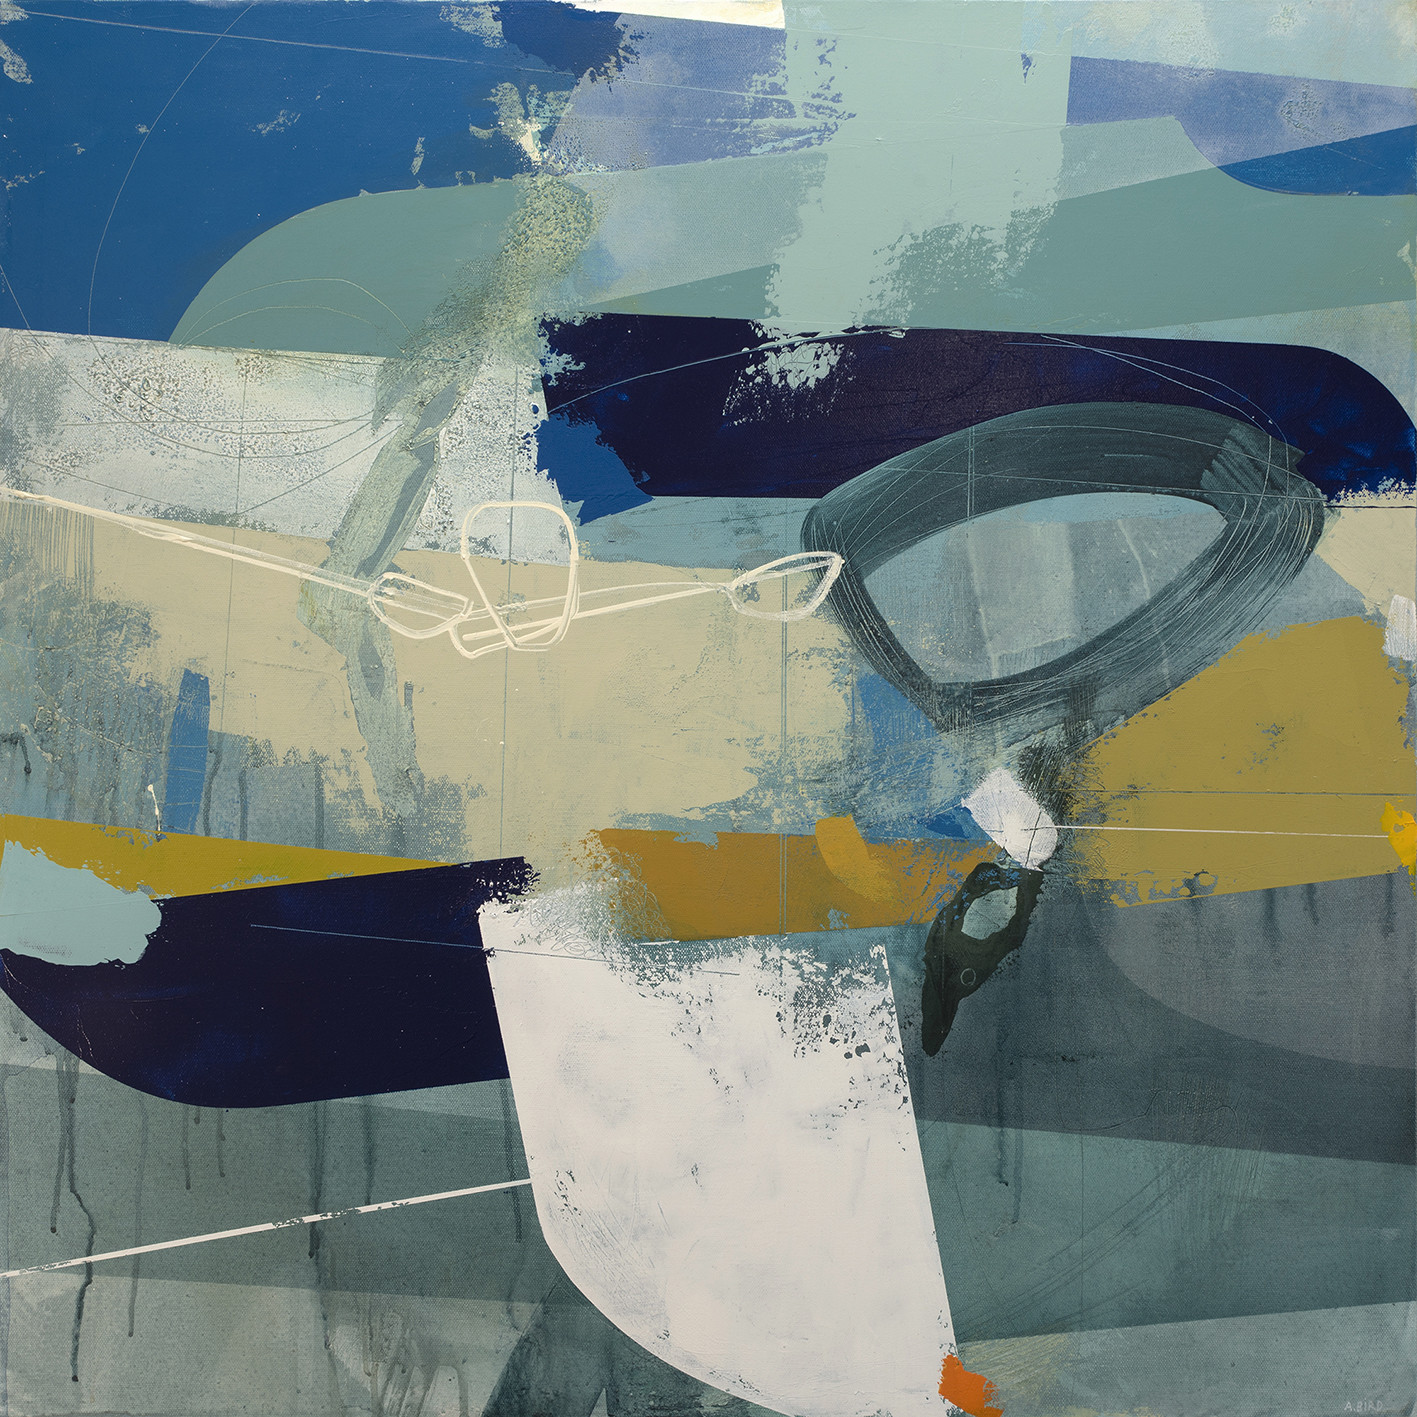 """<span class=""""link fancybox-details-link""""><a href=""""/artists/77-andrew-bird/works/6207-andrew-bird-tethered-2019/"""">View Detail Page</a></span><div class=""""artist""""><strong>Andrew Bird</strong></div> <div class=""""title""""><em>Tethered</em>, 2019</div> <div class=""""signed_and_dated"""">signed, titled and dated on reverse</div> <div class=""""medium"""">acrylic on canvas</div> <div class=""""dimensions"""">h 76 x w 76 cm<br /> 29 7/8 x 29 7/8 in</div><div class=""""price"""">£2,500.00</div><div class=""""copyright_line"""">Own Art: £ 250 x 10 Months, 0% APR</div>"""